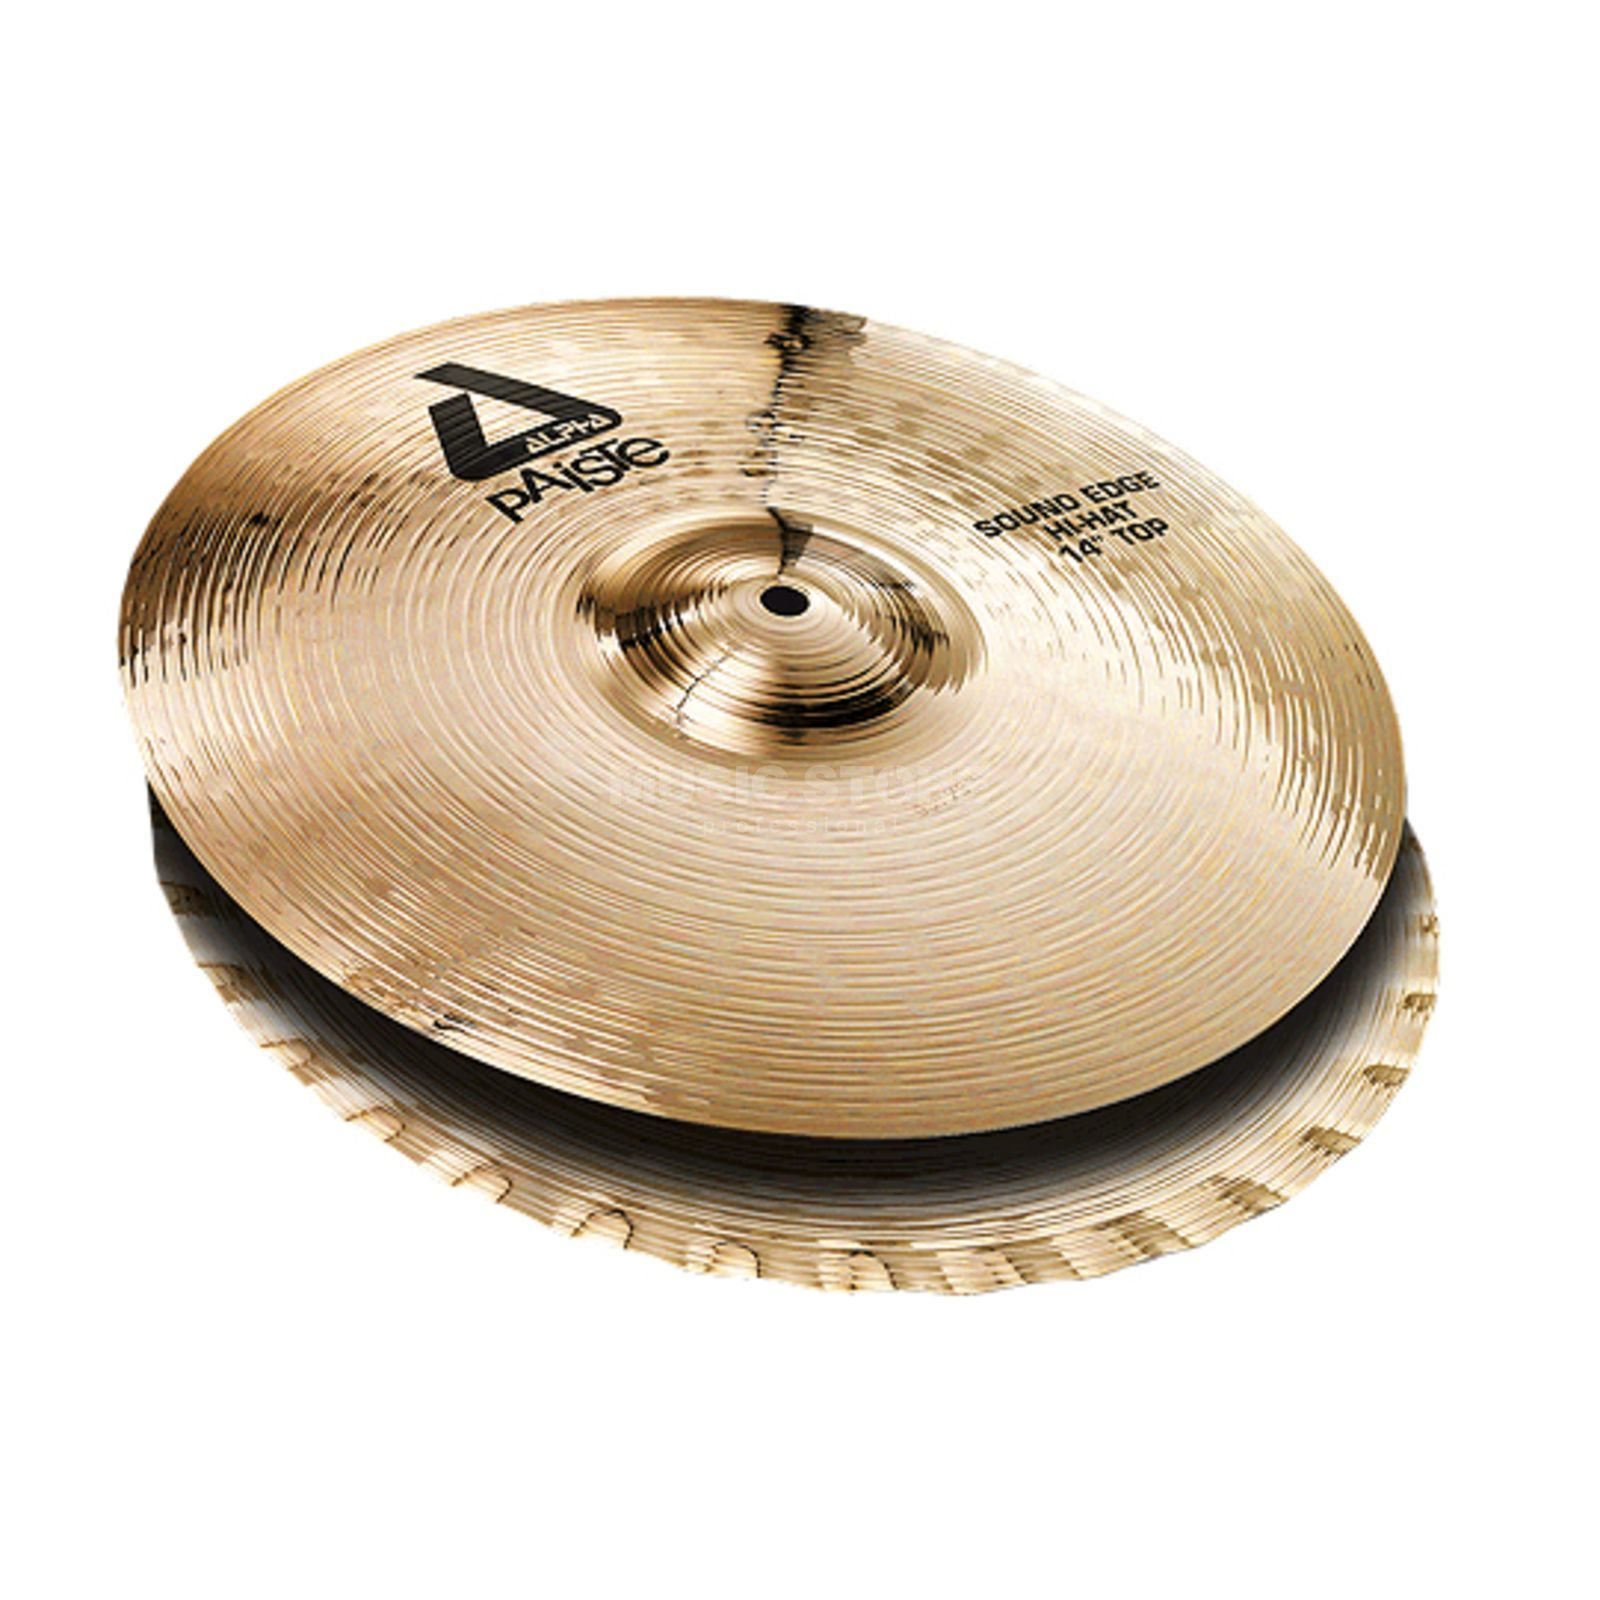 "Paiste Alpha Sound Edge HiHat 14"", Brilliant Product Image"